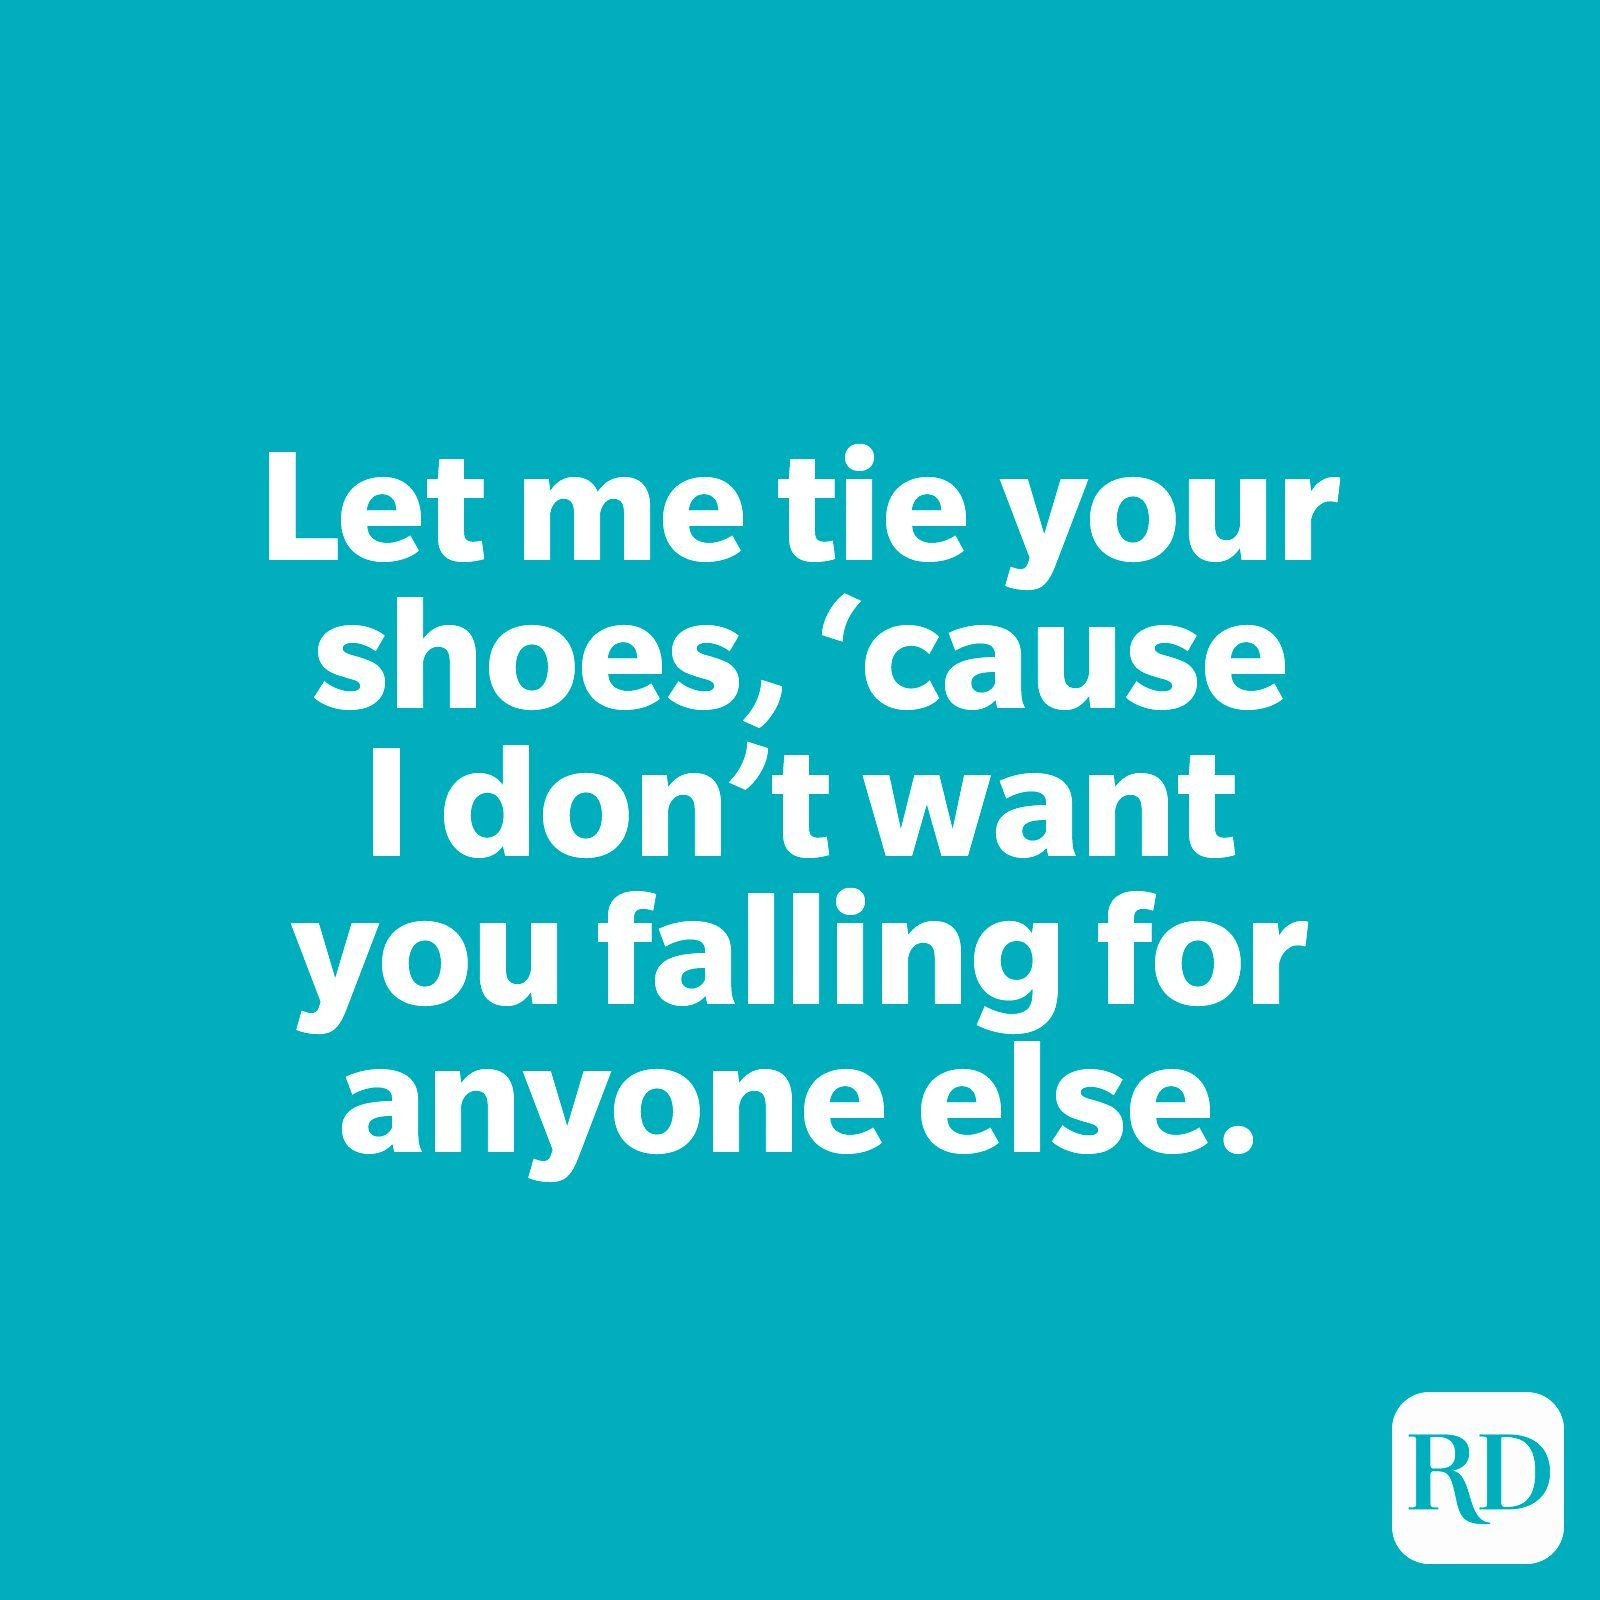 Let me tie your shoes, 'cause I don't want you falling for anyone else.